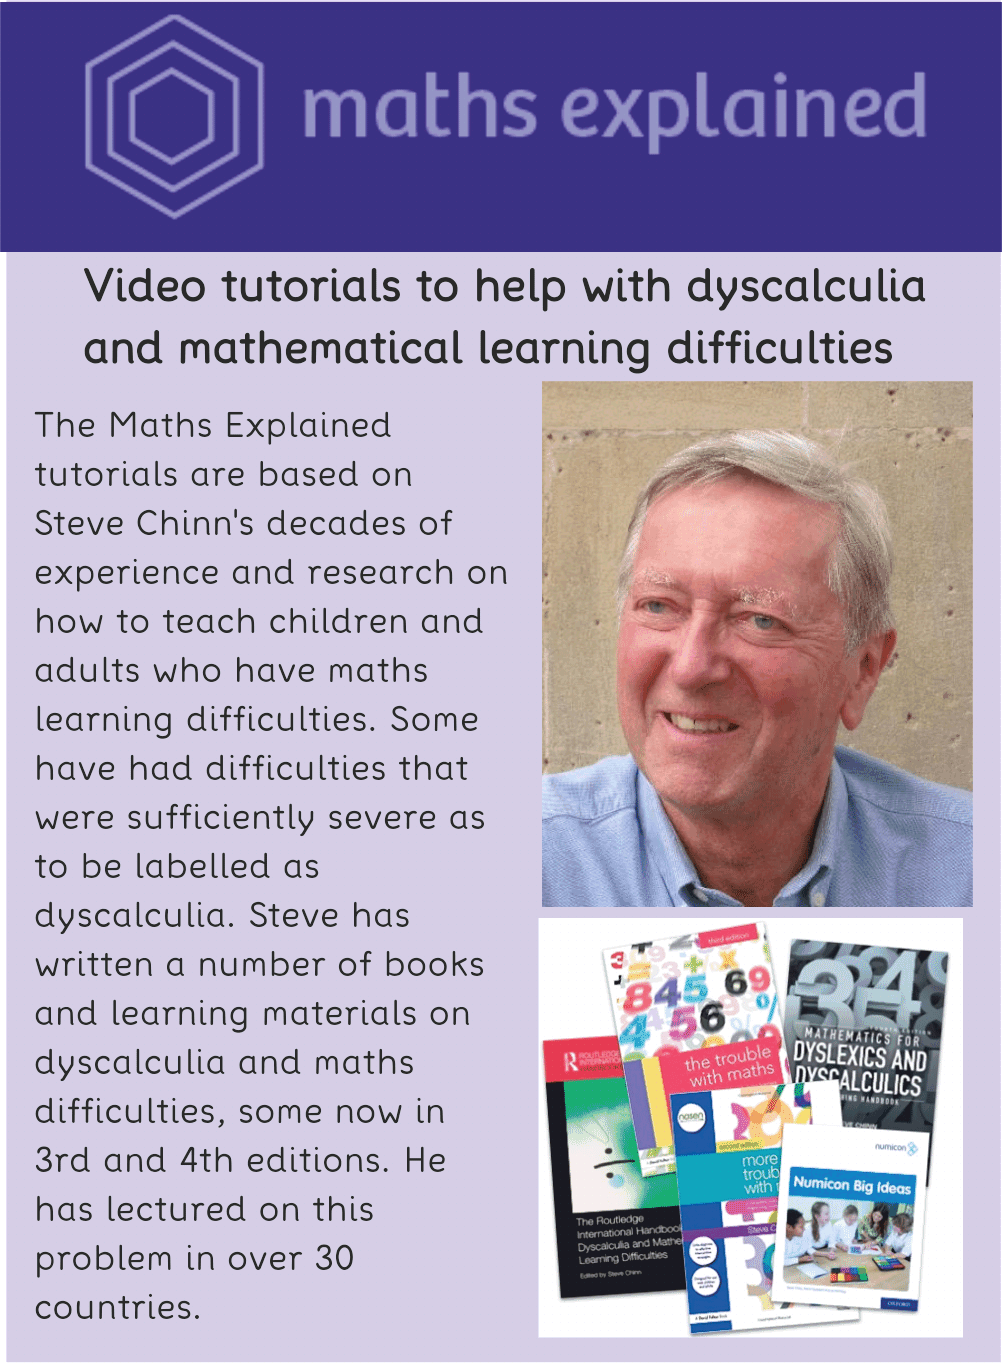 Maths Explained videos for dyscalculia and maths learning difficulties